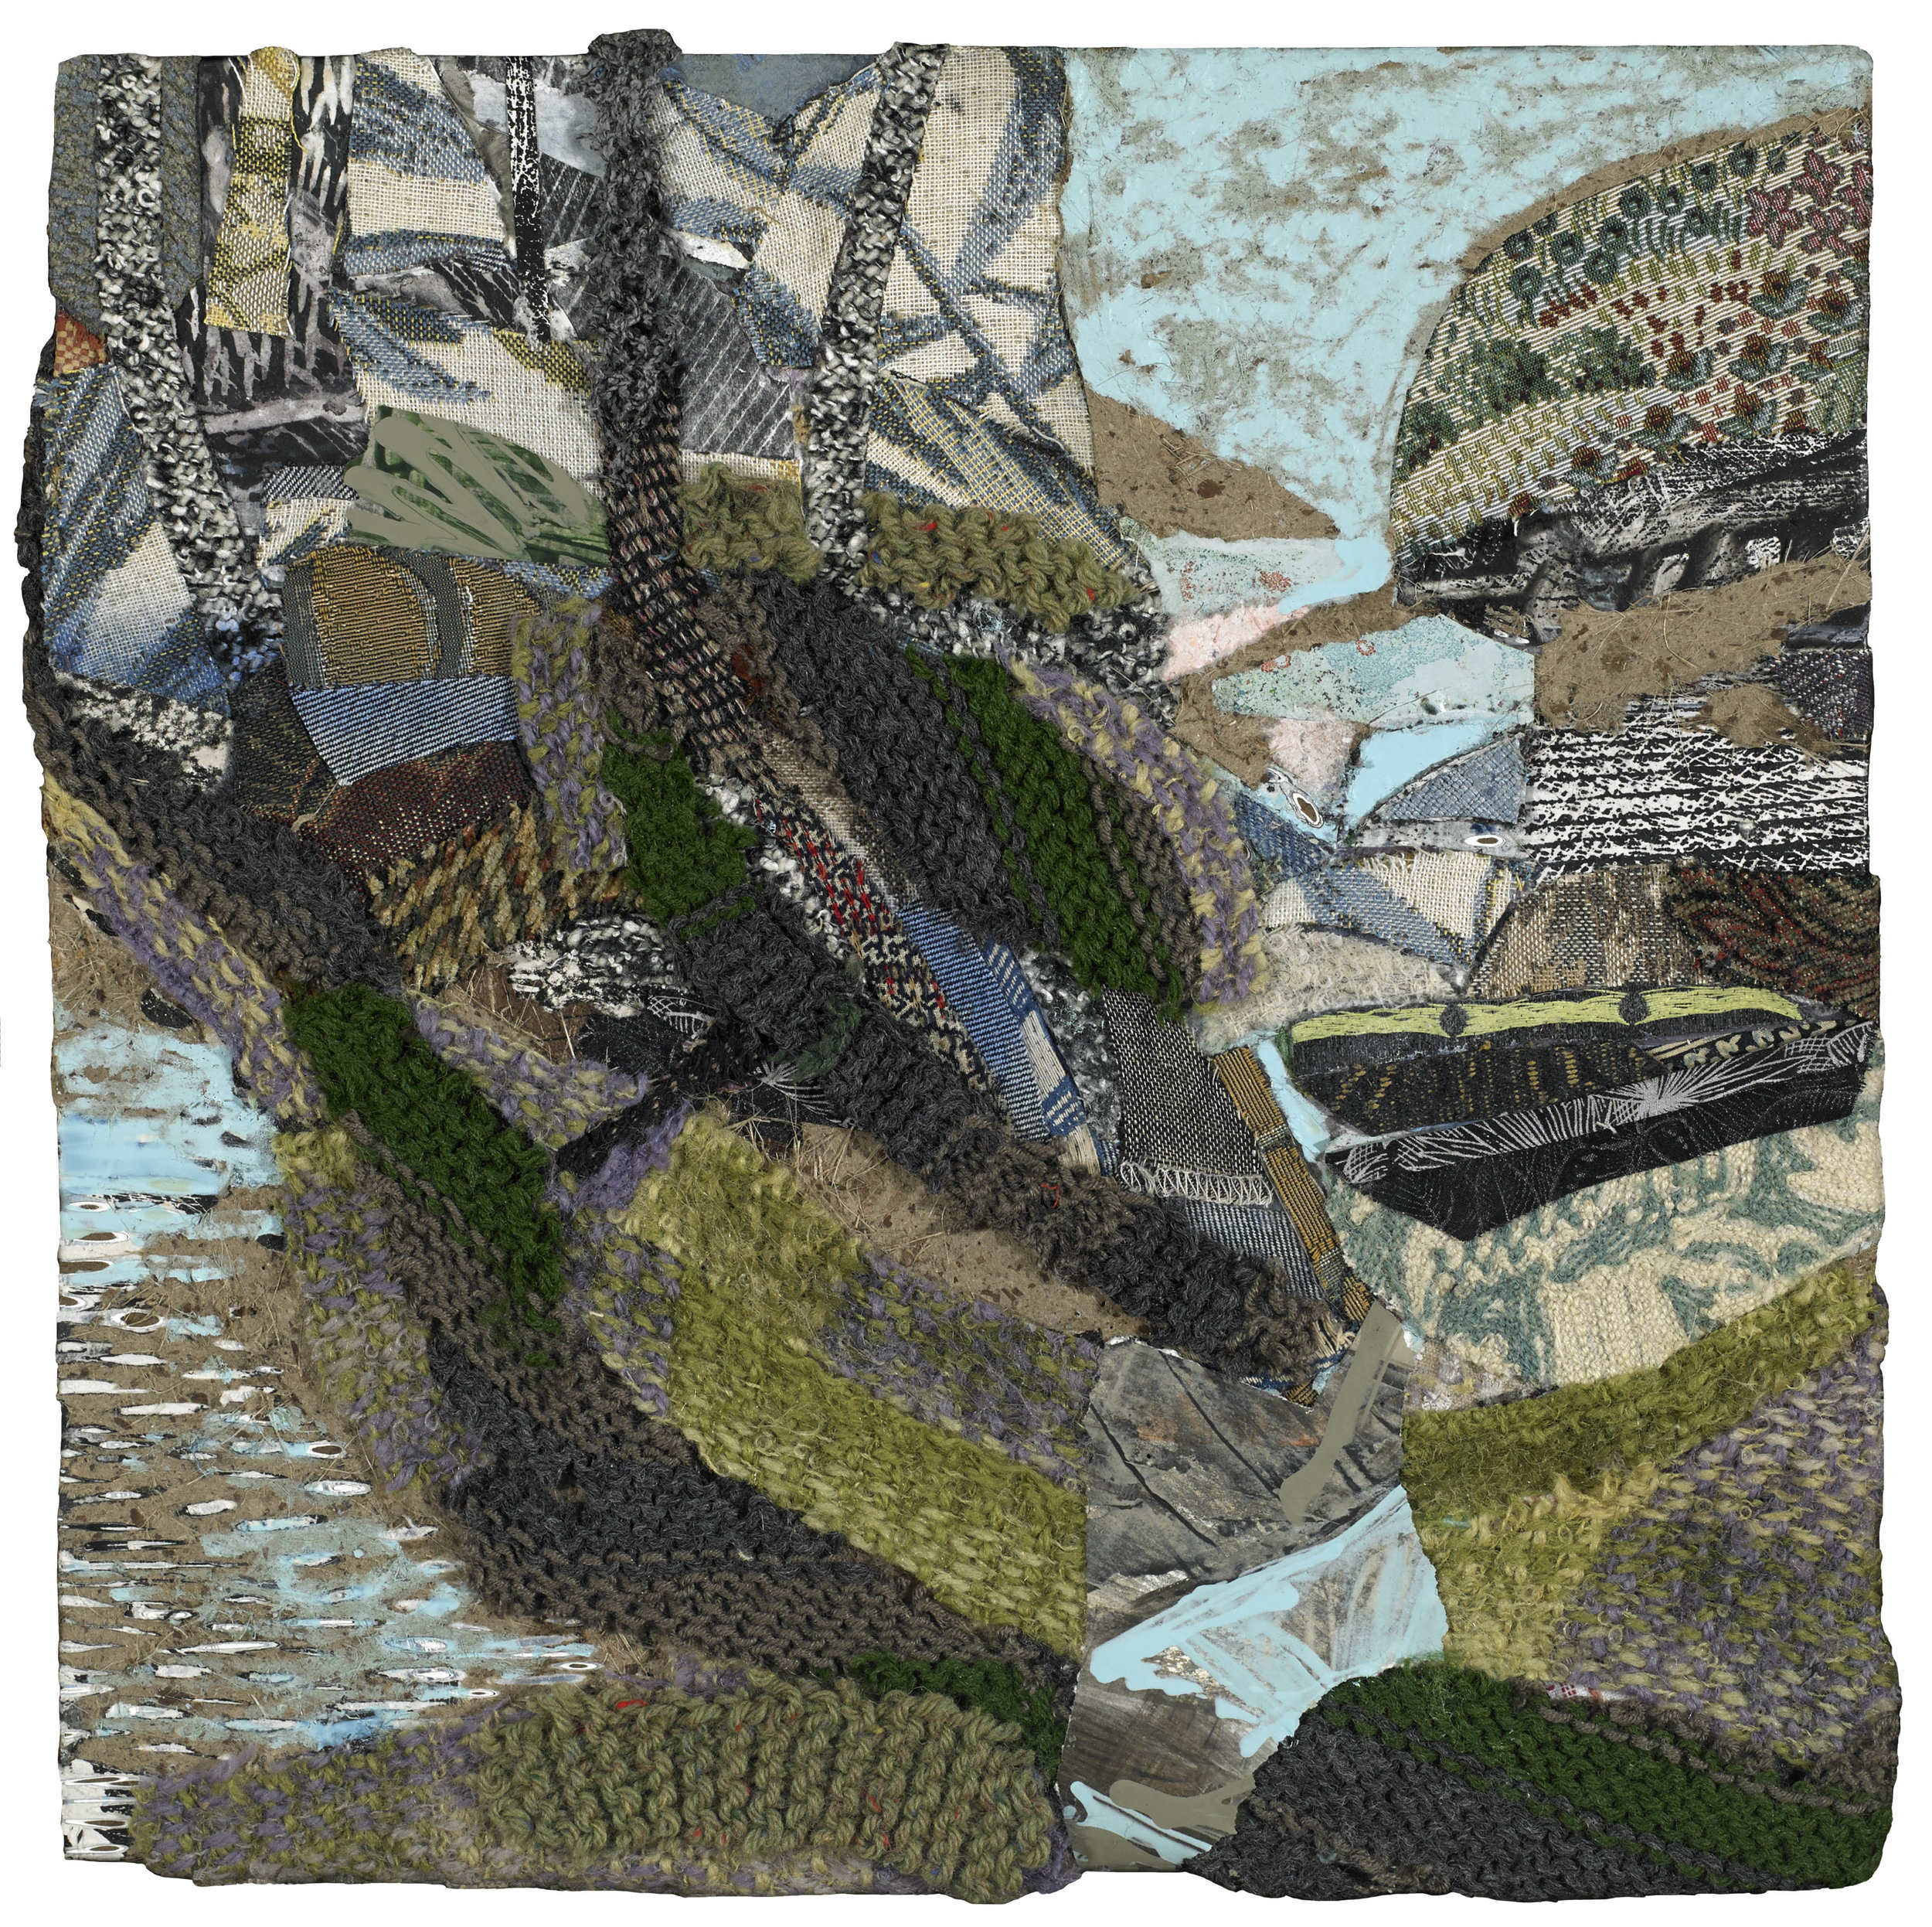 Inlet , 2013, mixed media on panel, 16 1/2 x 16 1/2 inches